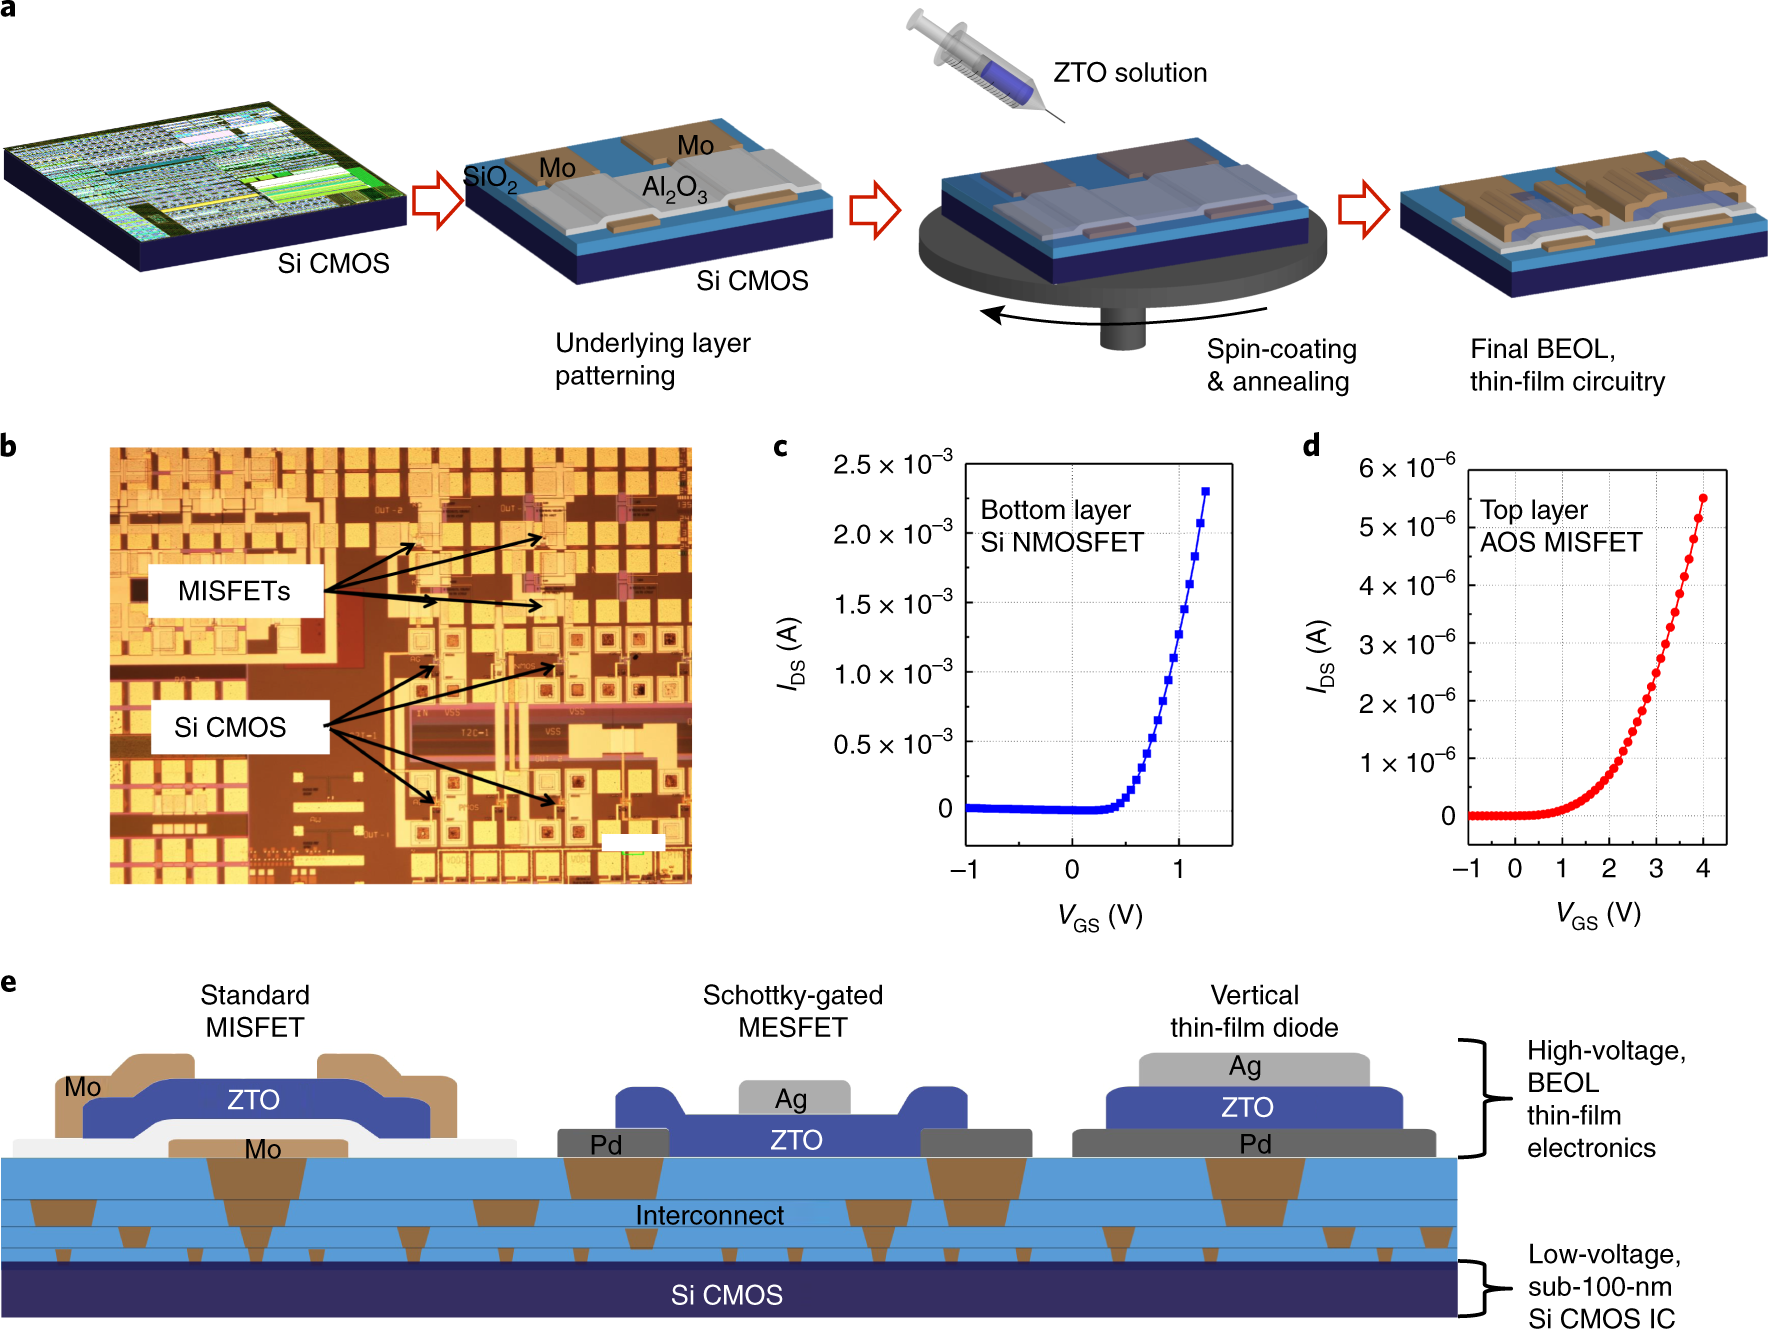 Monolithic integration of high-voltage thin-film electronics on low-vo